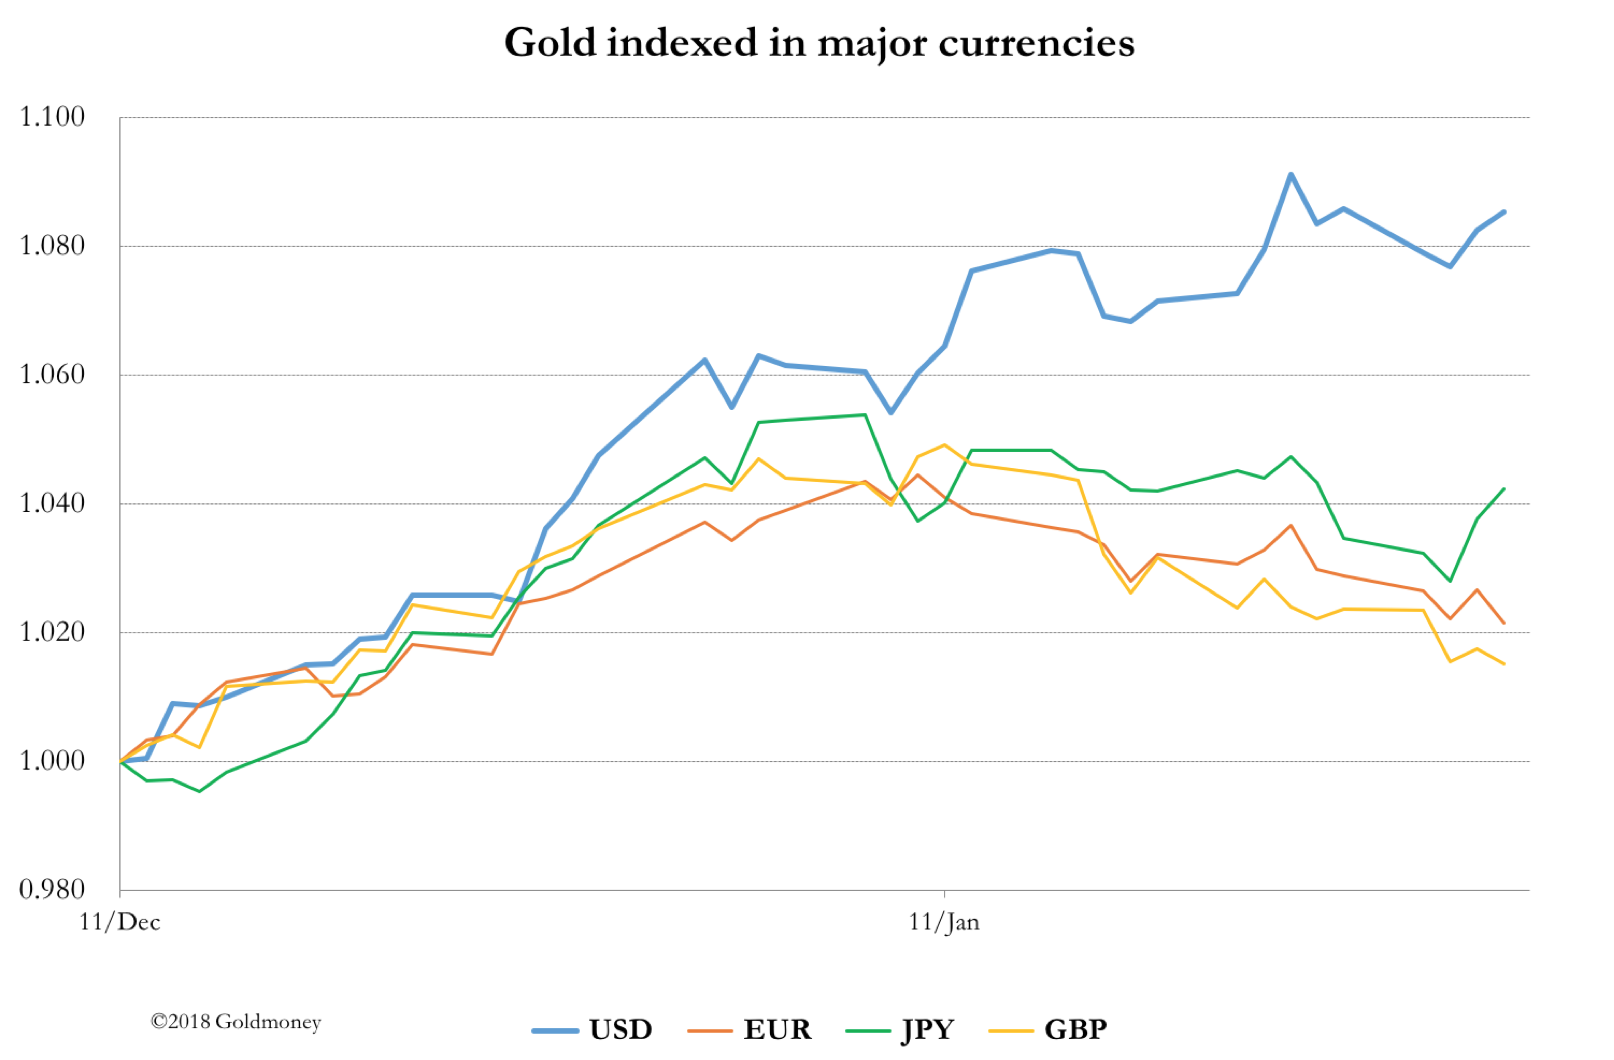 Gold priced in major currencies Jan 2018